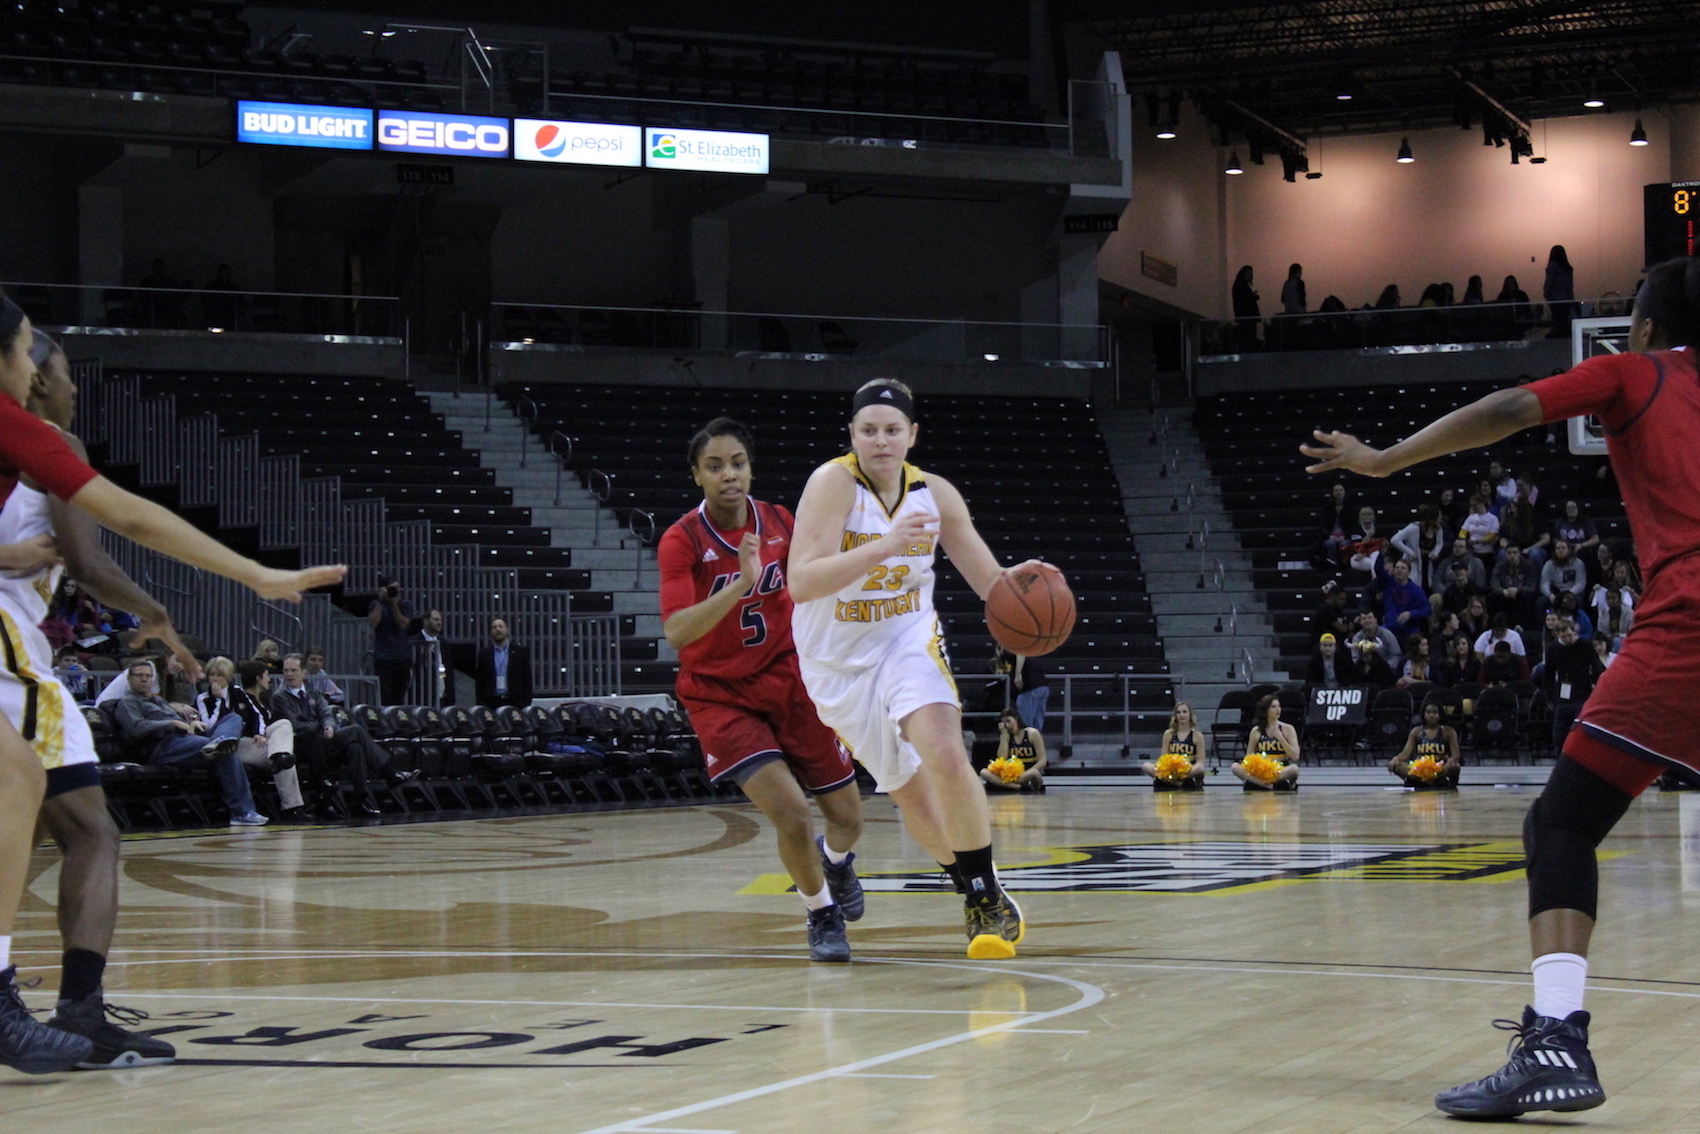 NKU's Kasey Uetrecht drives to the basket on Thursday against UIC.